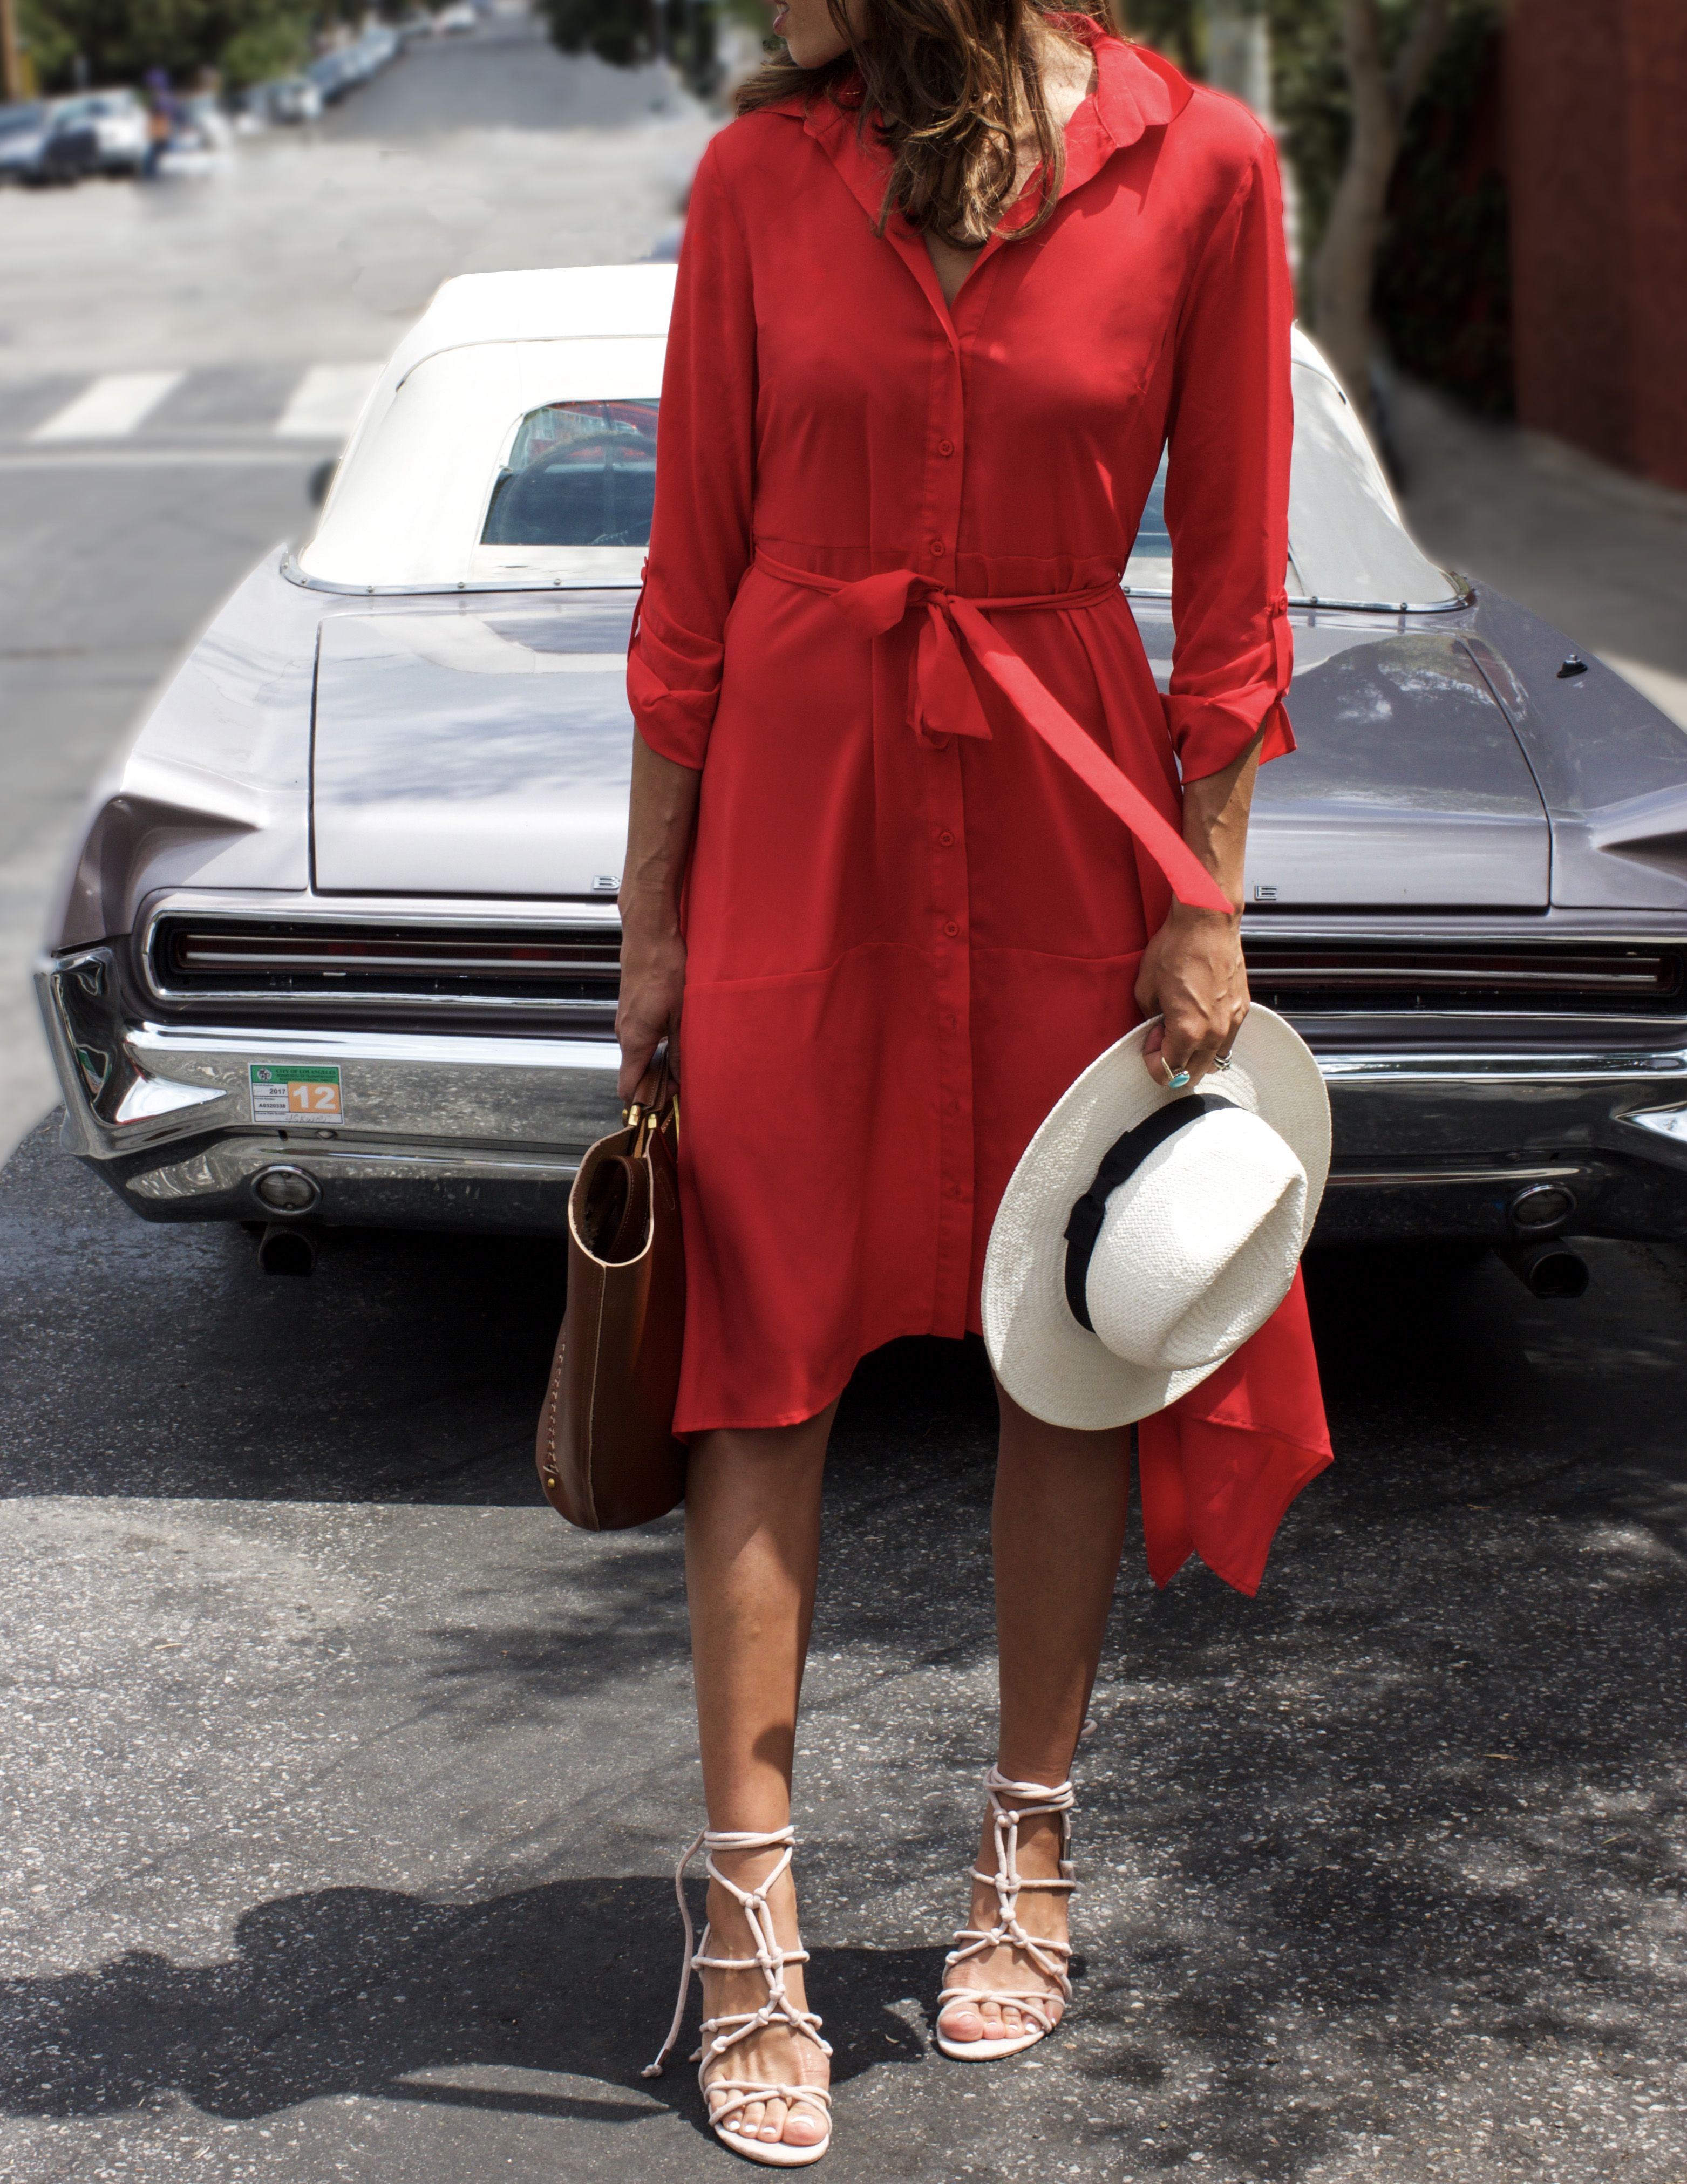 A Little Red Dress With Nordstrom Shalice Noel Little Red Dress Red Dress Top Shop Dress [ 4047 x 3126 Pixel ]